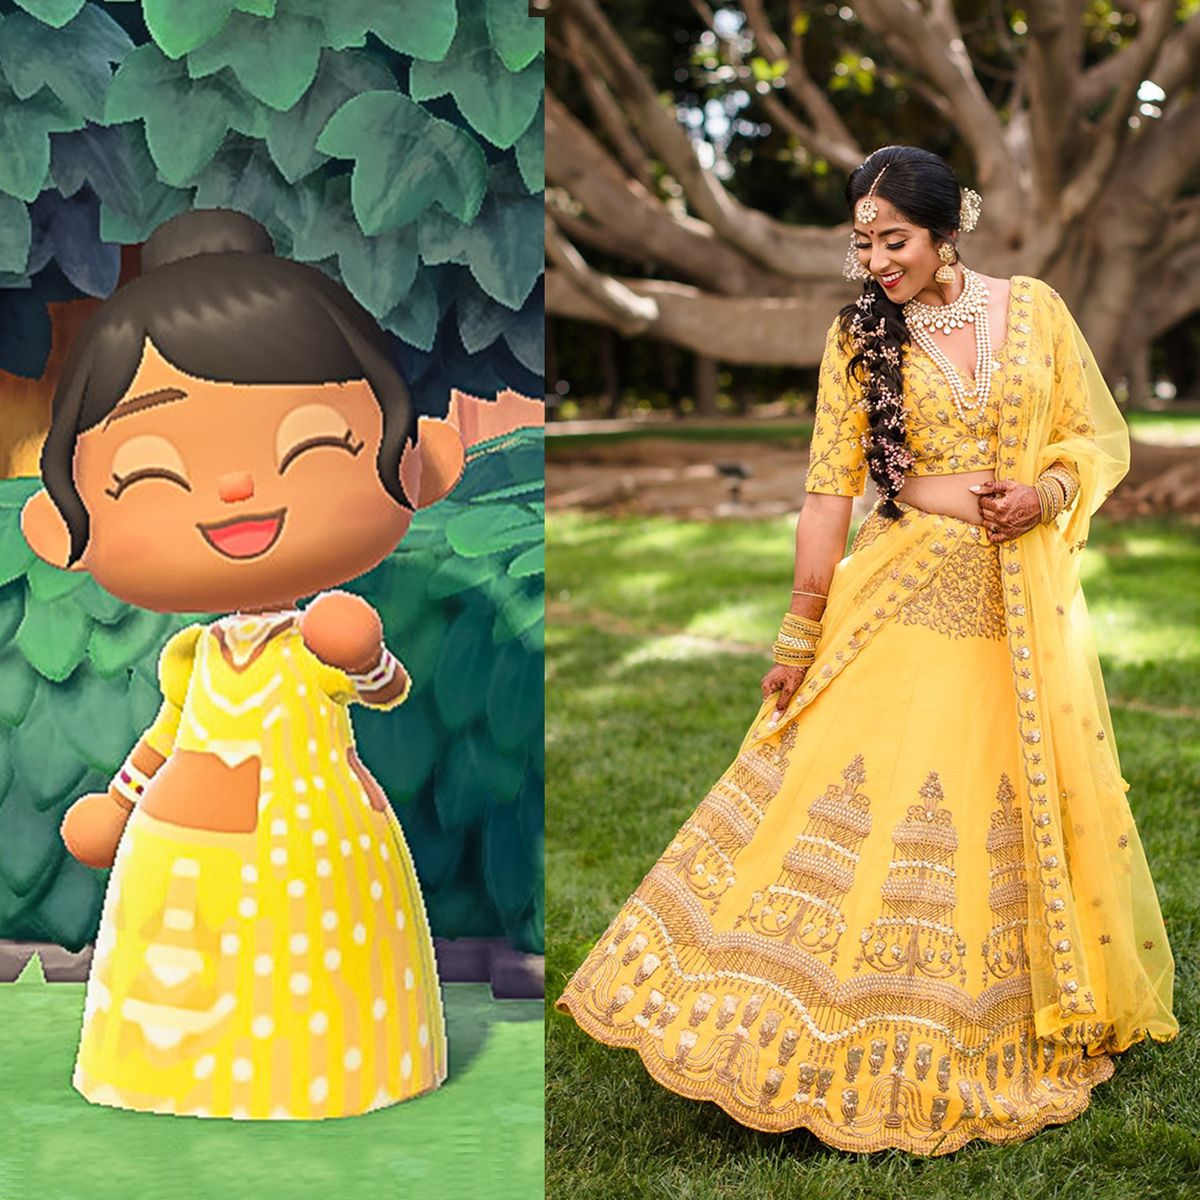 A picture with two fields, on the right a photo of a woman in her yellow wedding lehenga, and on the left a screenshot from Animal Crossing: New Horizons showing her character in a bespoke version of the same outfit